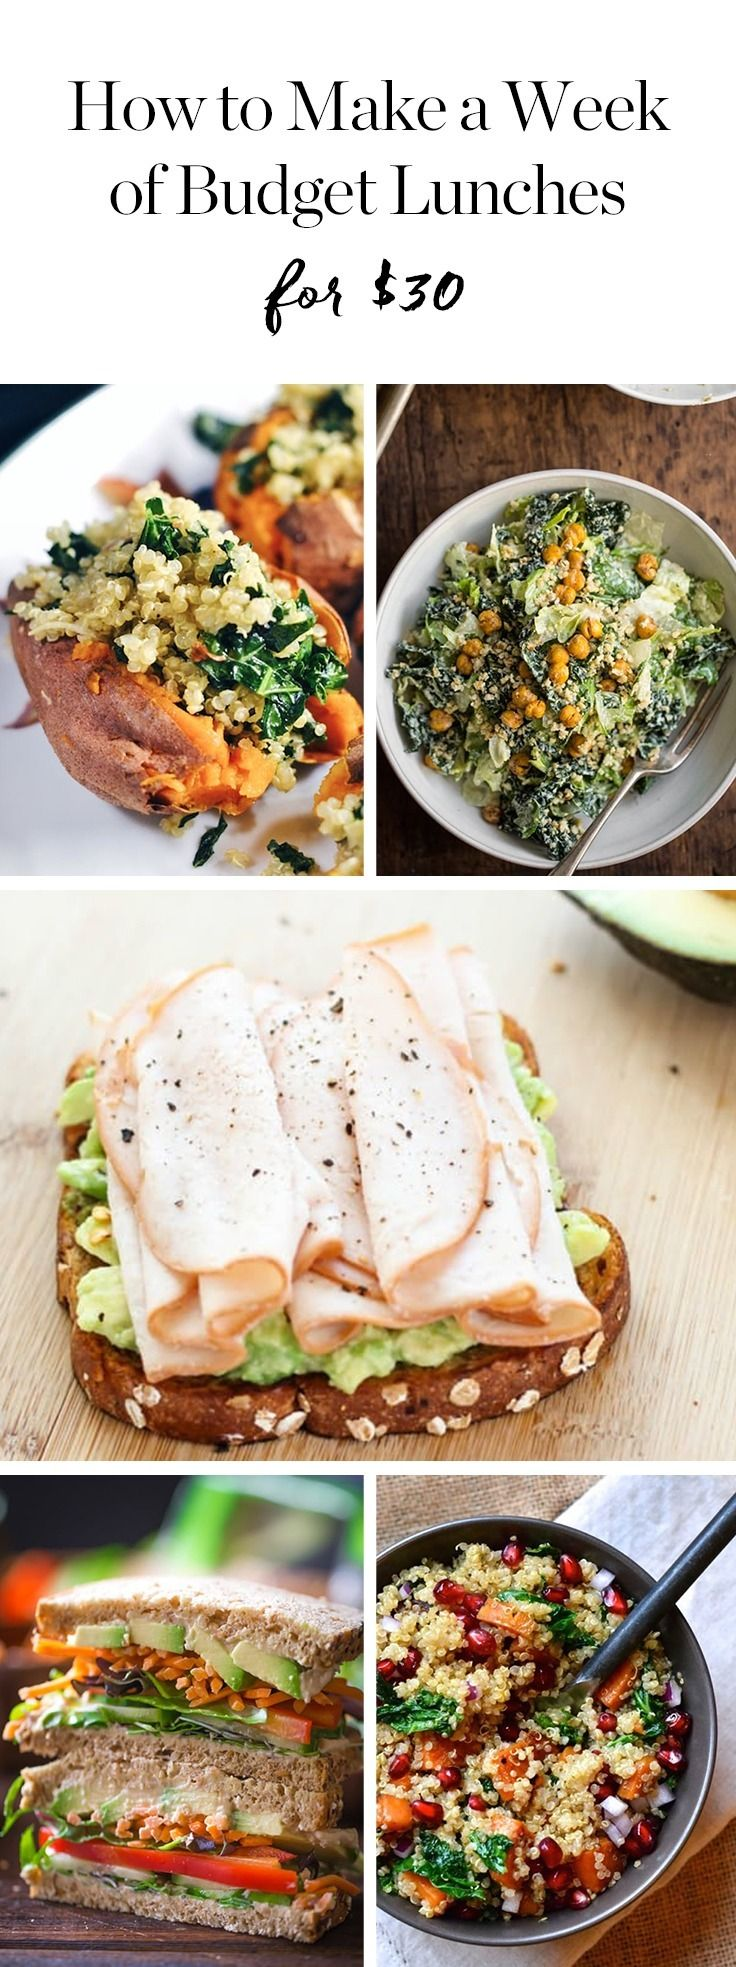 Presenting five exciting lunches that will cost you only $30 to make, plus a few staples you already have in your pantry.